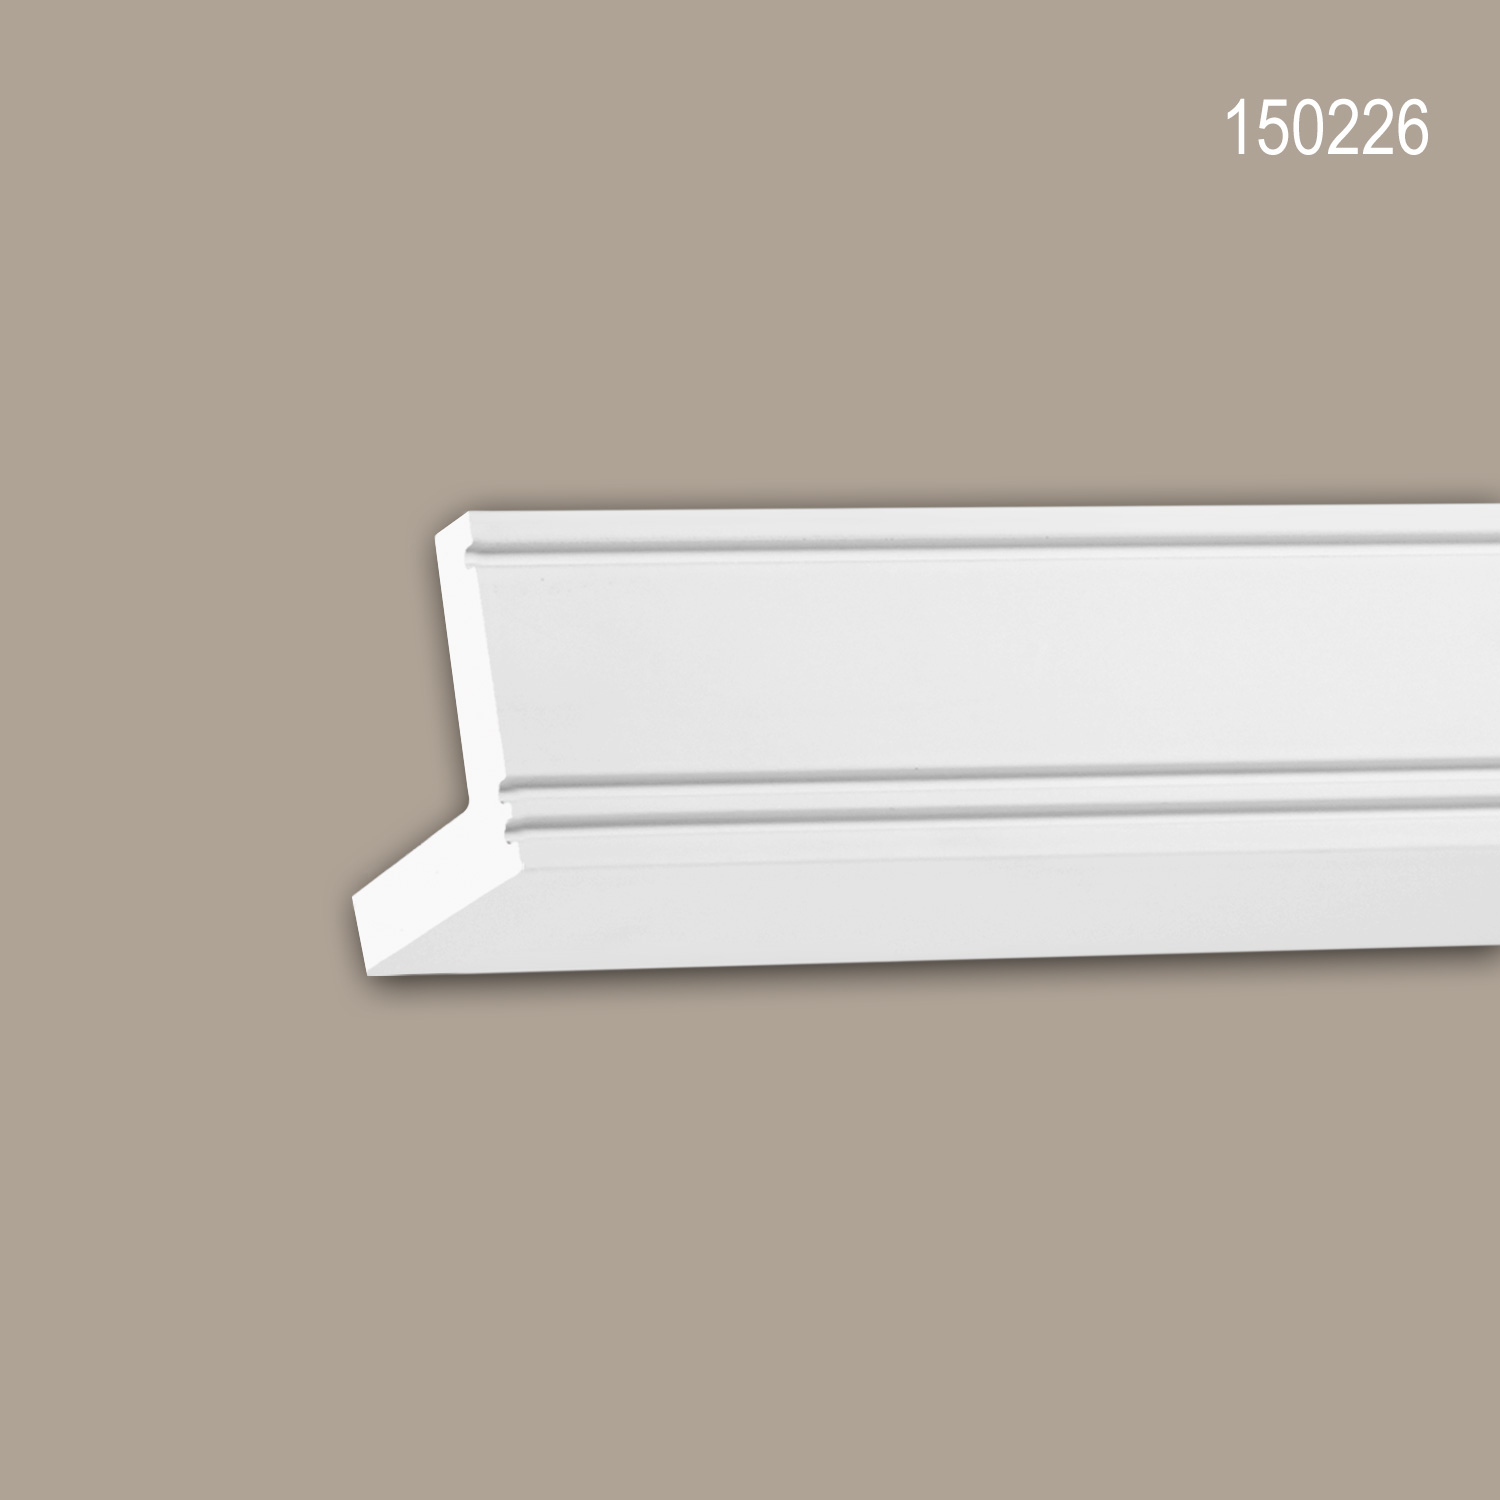 cornice molding decorative molding molding for indirect lighting molding for decoration 2 m 150226 profhome profhome shop